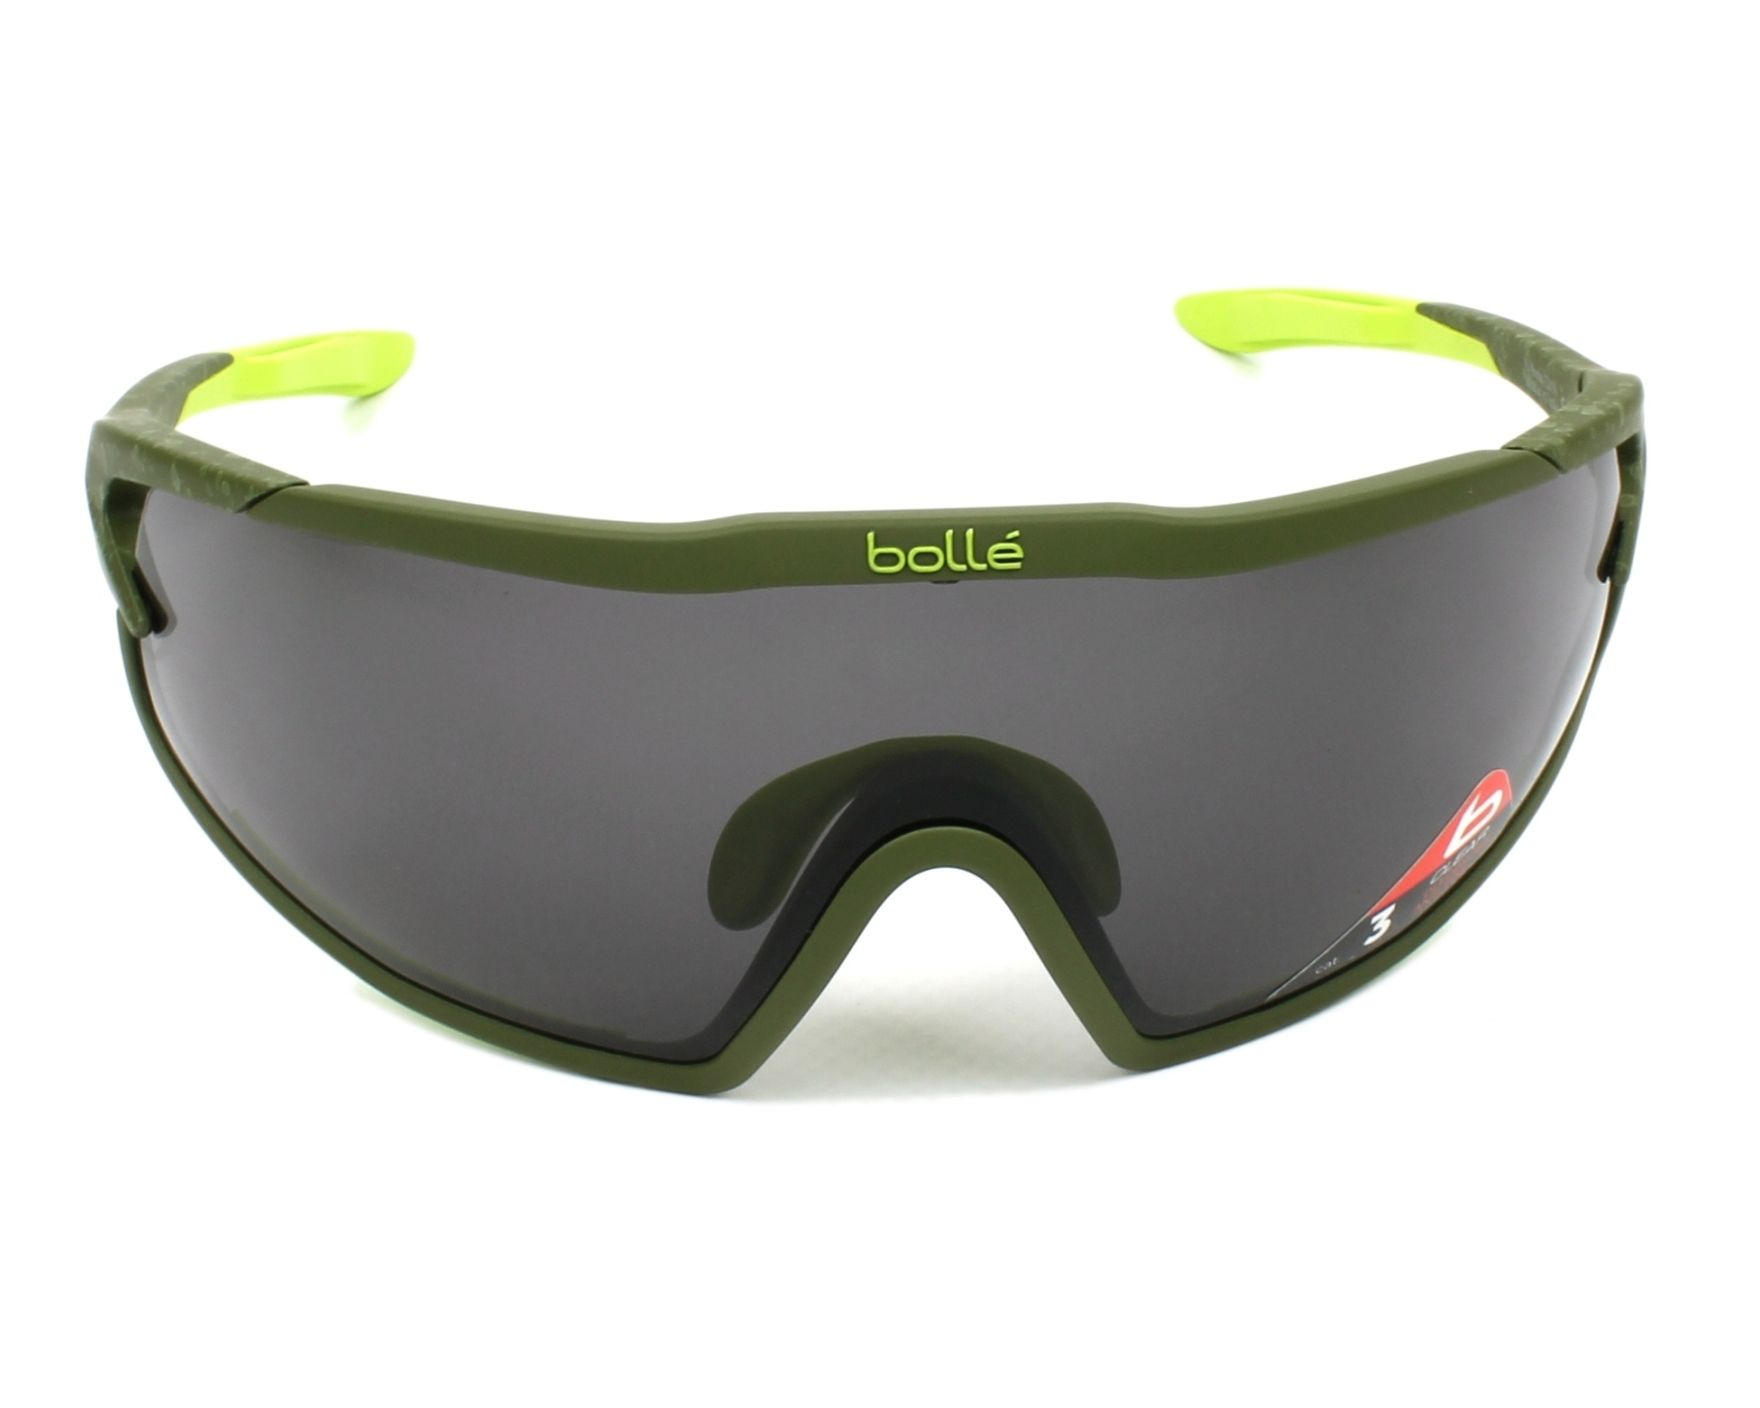 8fcc4ce19d8 Bollé Sunglasses BROCK 12155 Green - Visionet Bolle Anaconda Sunglasses  Prescription